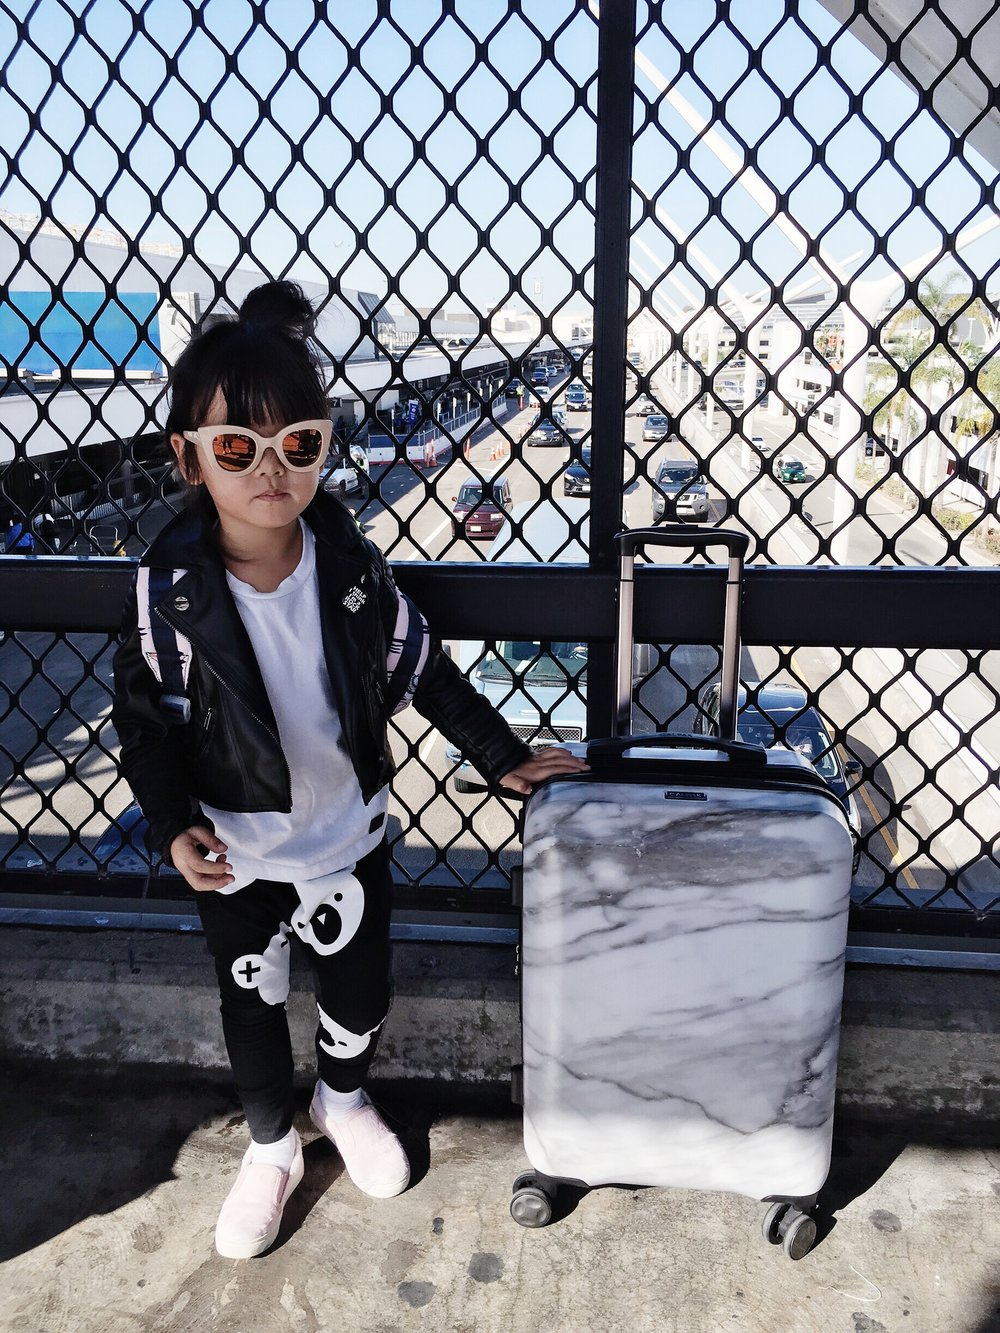 Zooey's Airport Style: Carry on Marble case: Calpak, Sunnies: Sons + Daughters, Vegan Leather Jacket: Eve Jnr, Tee: Minixstyle, Pants: Huxbaby, Sneakers: AKID (easy to take off on the plane!)